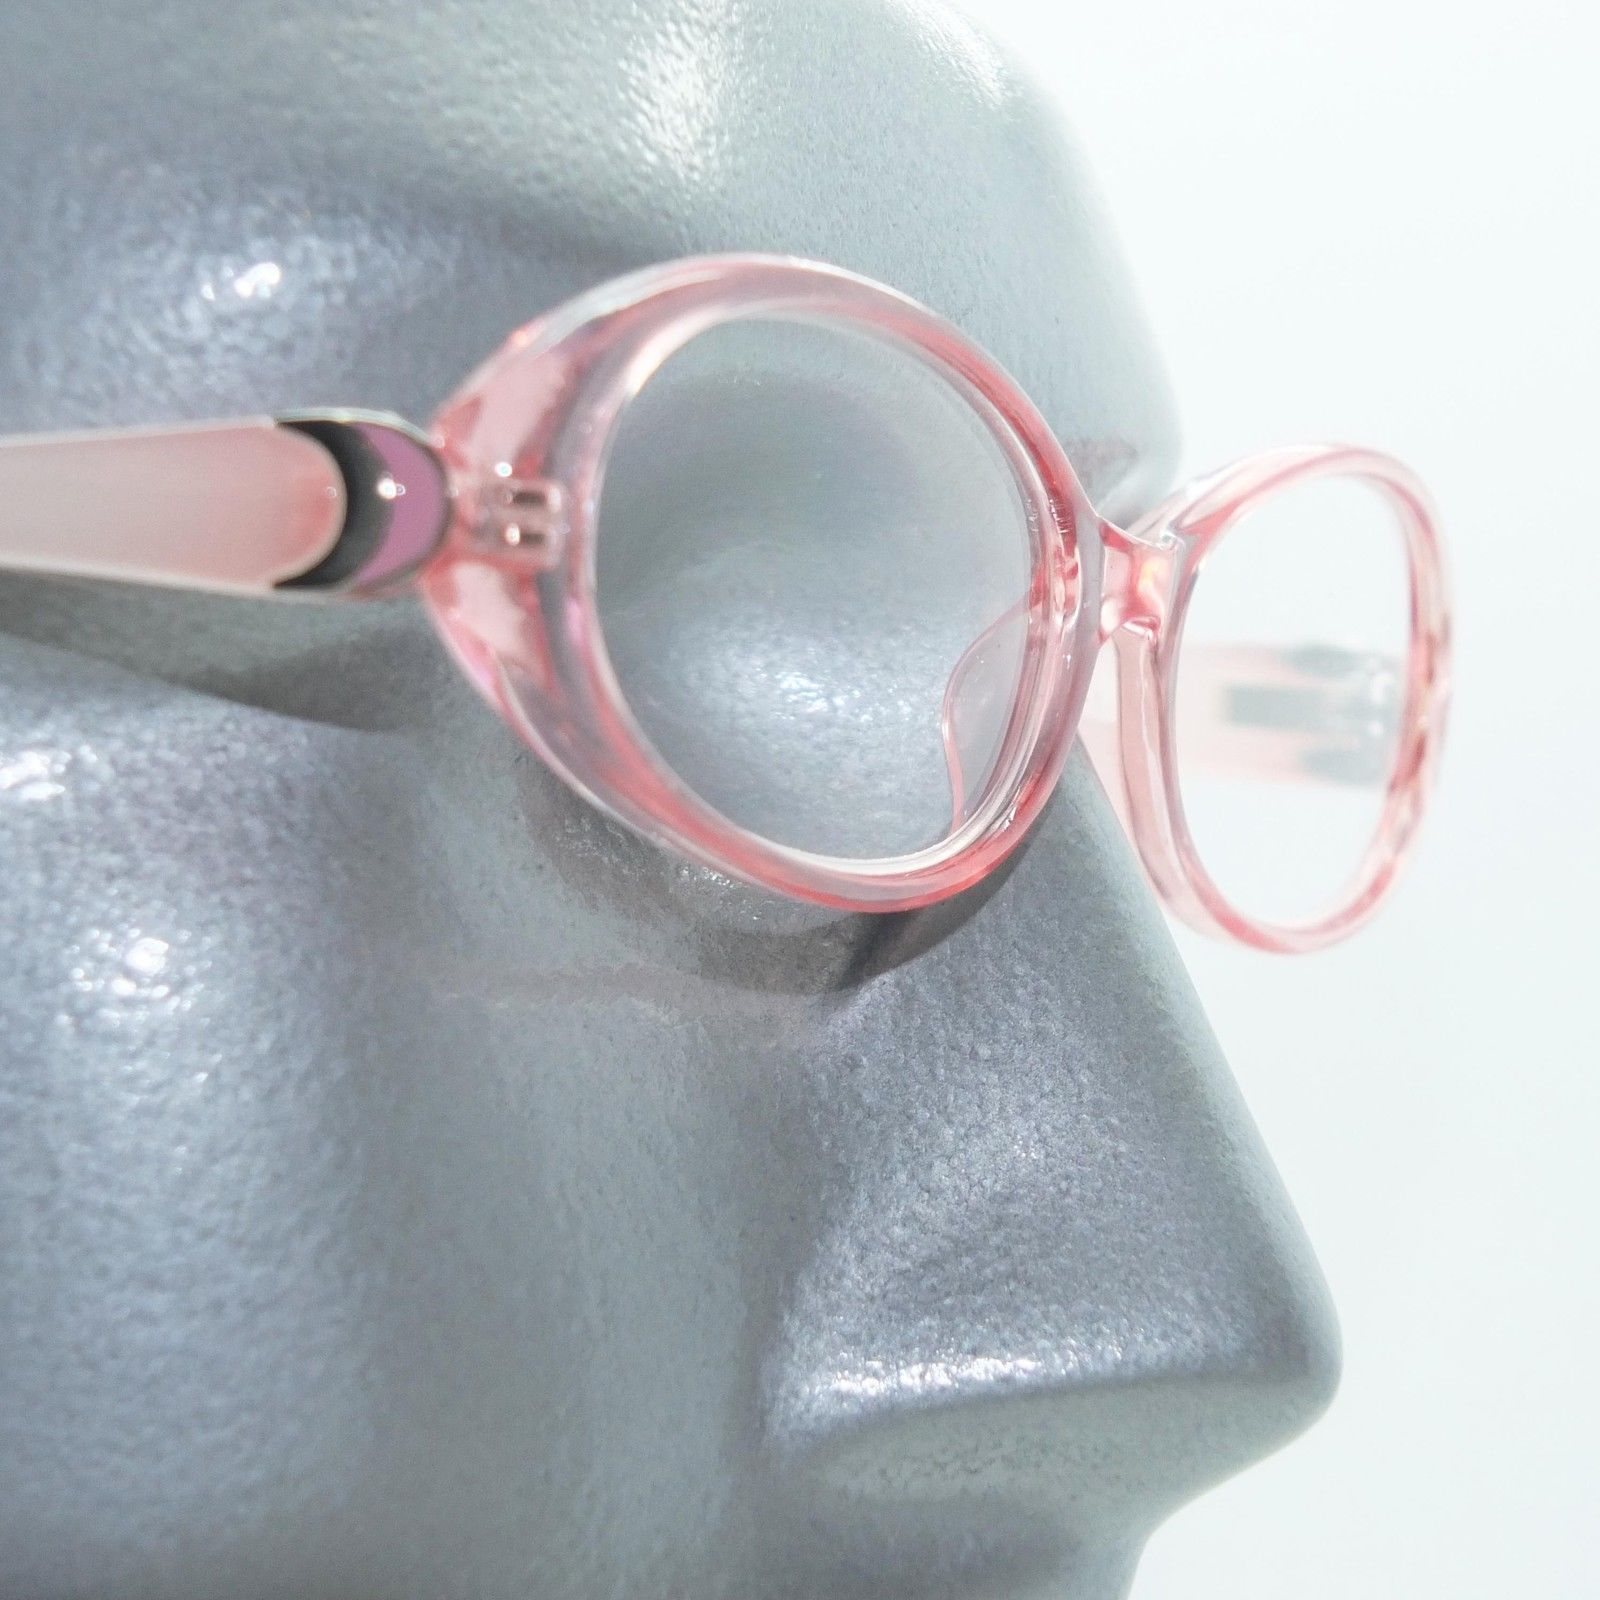 Primary image for Fun Reading Glasses See Thru 50's Pink Jelly Whimsy Oval Frame +2.50 Lens